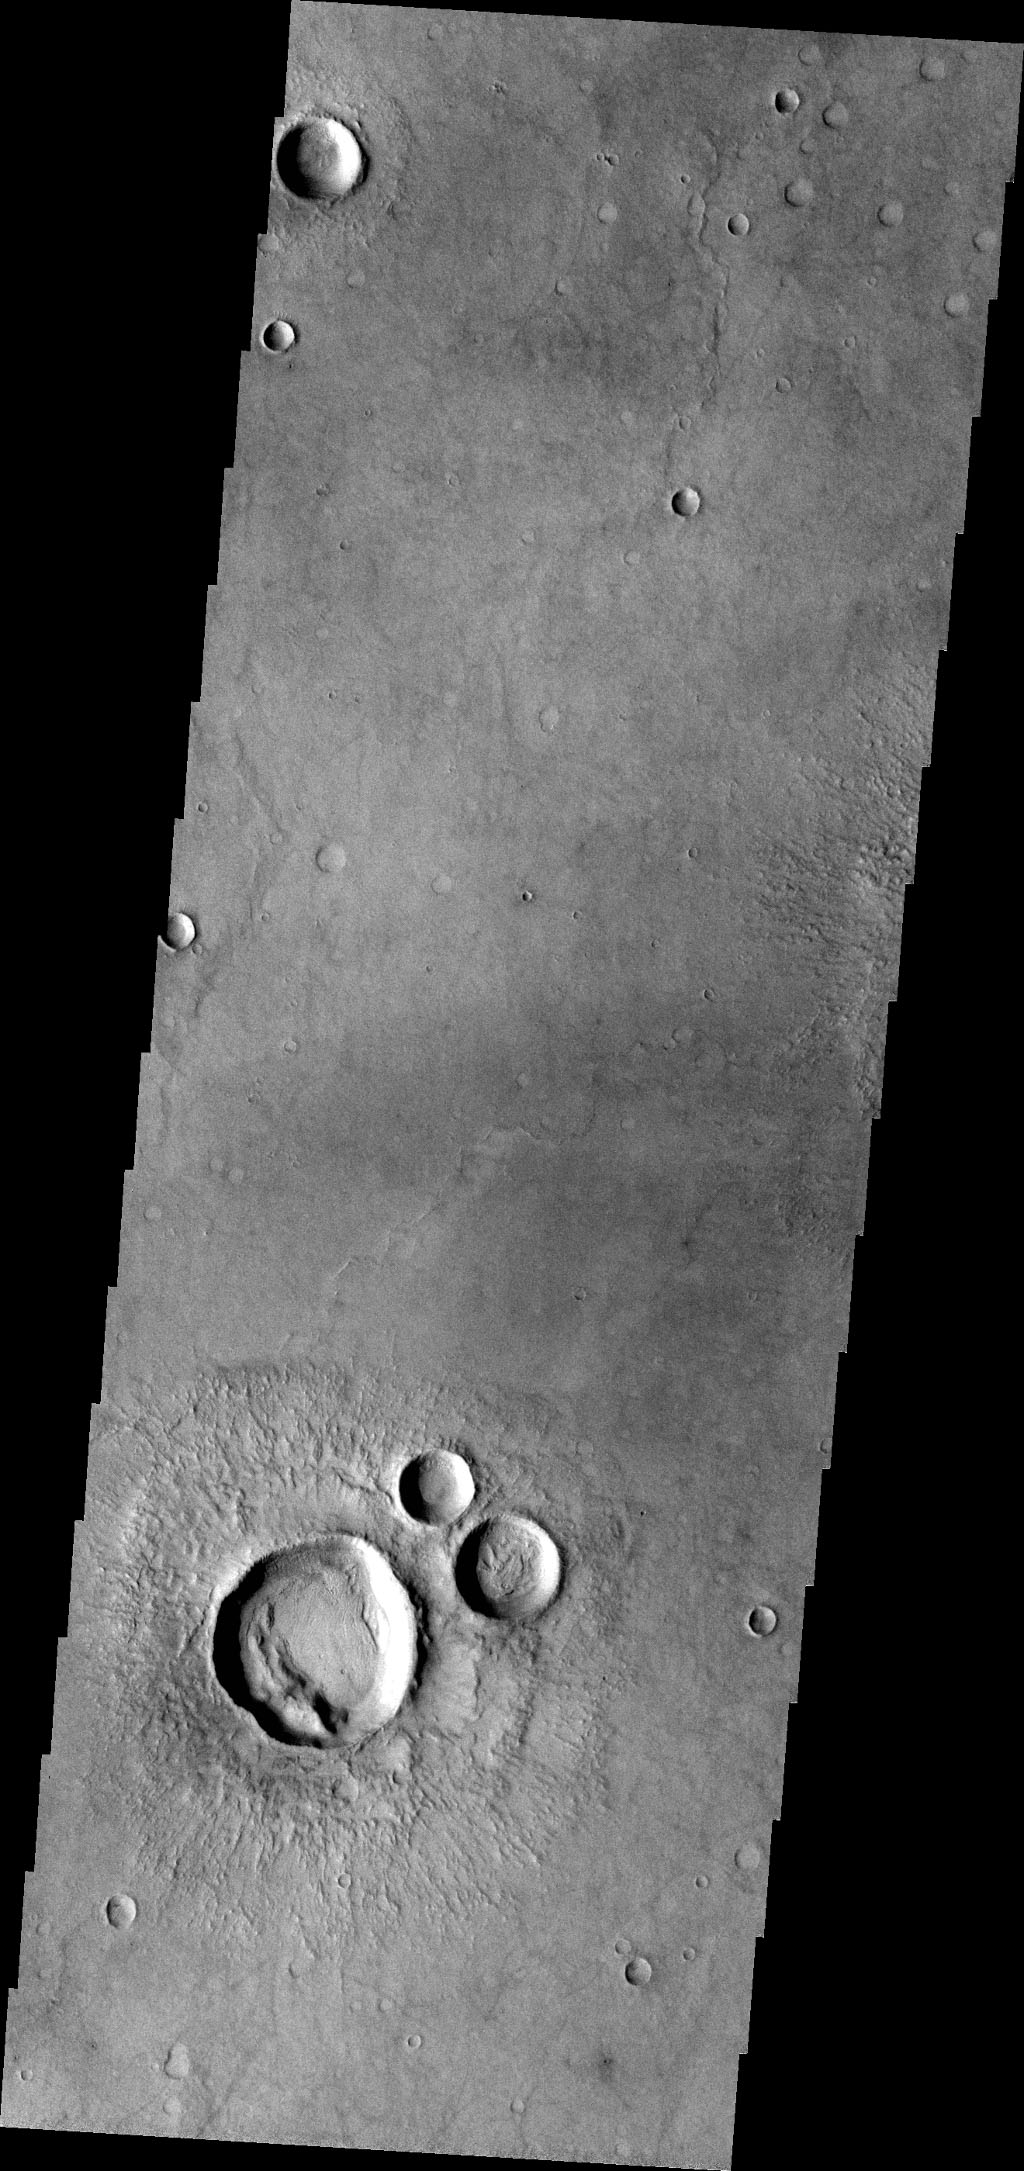 Do you see what I see in this image from NASA's Mars Odyssey spacecraft? The group of craters at the bottom of the image look like a muppet.